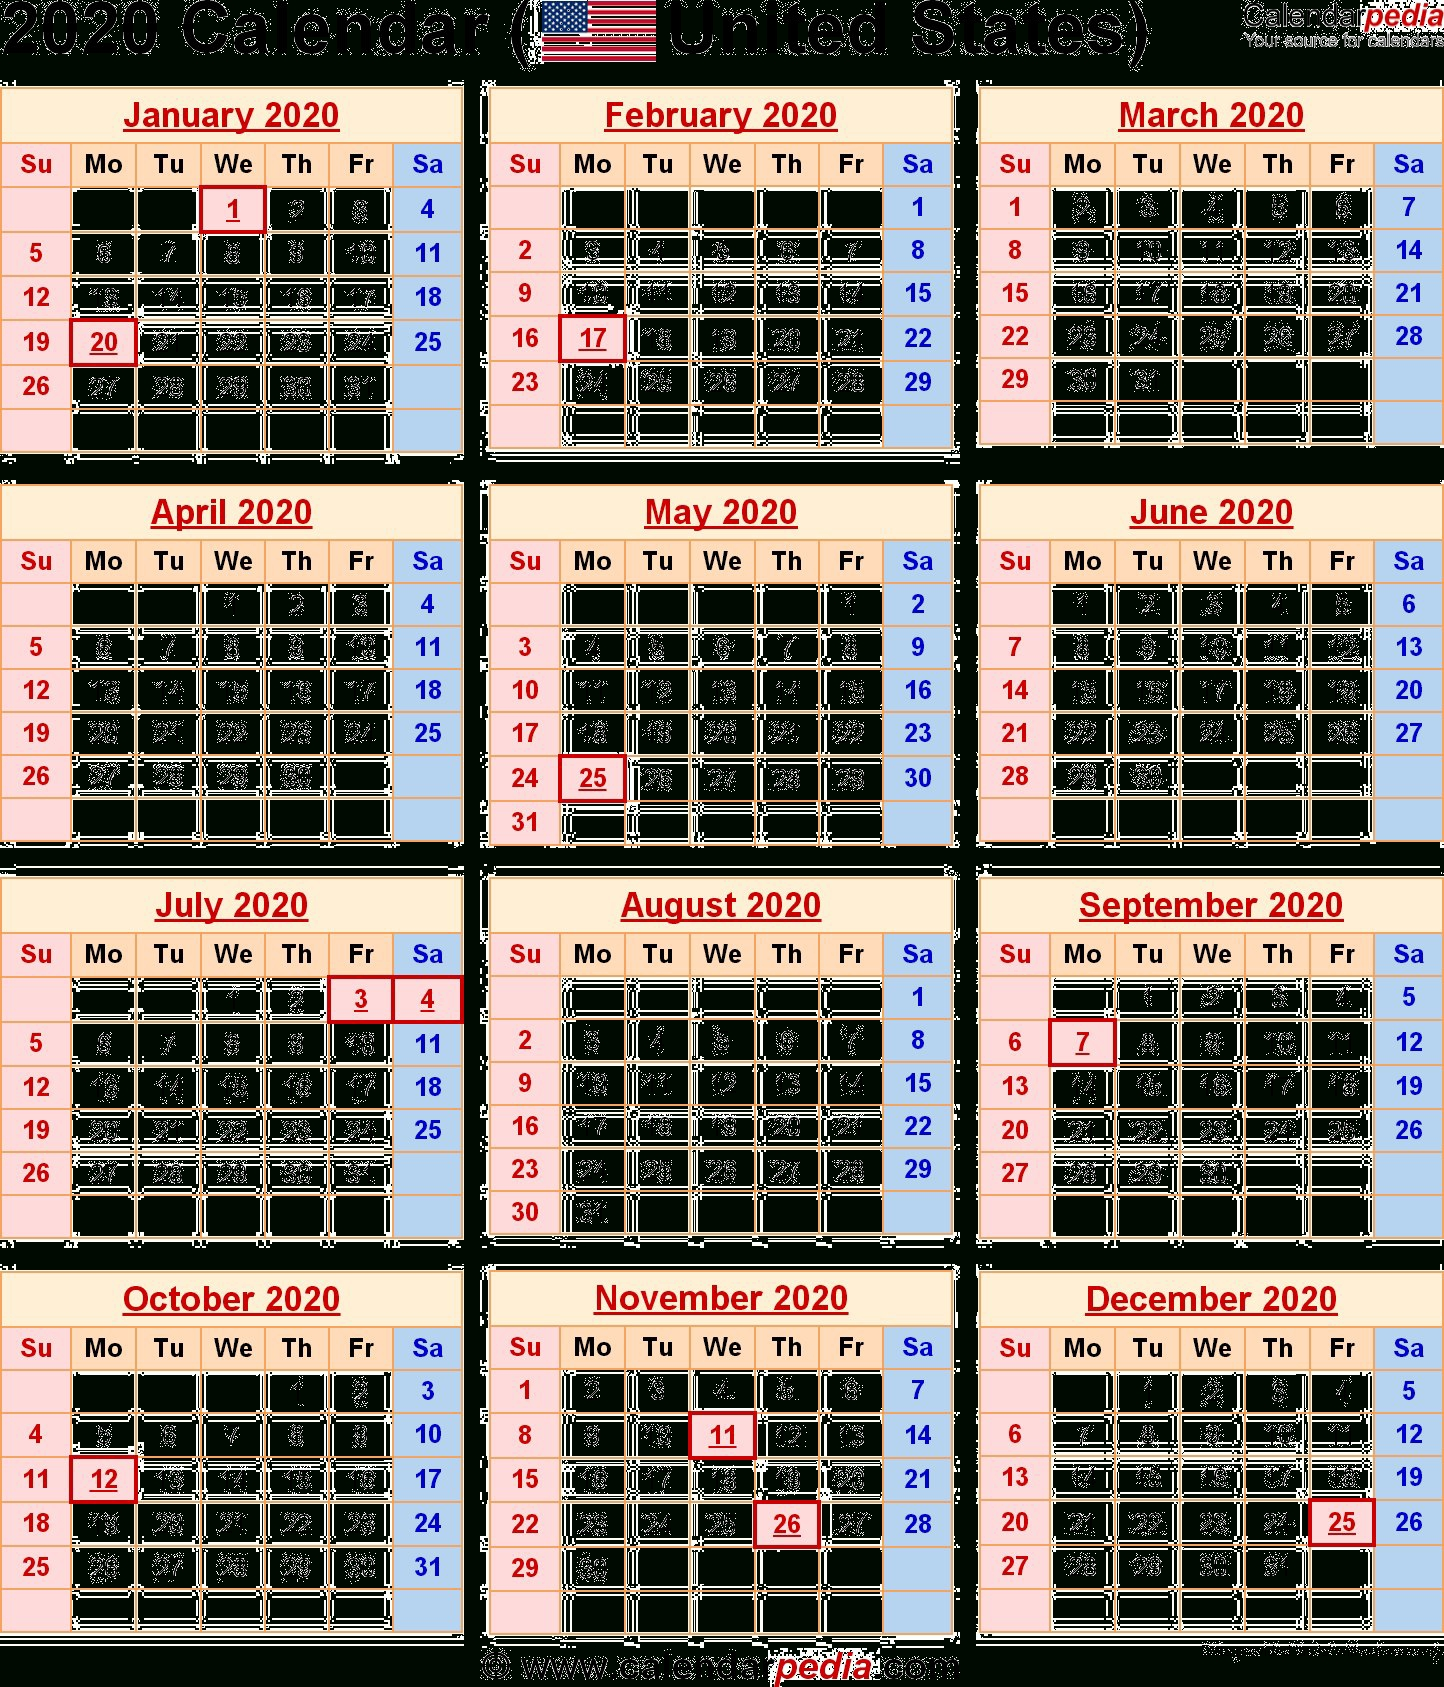 2020 Calendar Png Transparent Images | Png All  2020/2020 Financial Year Calendar